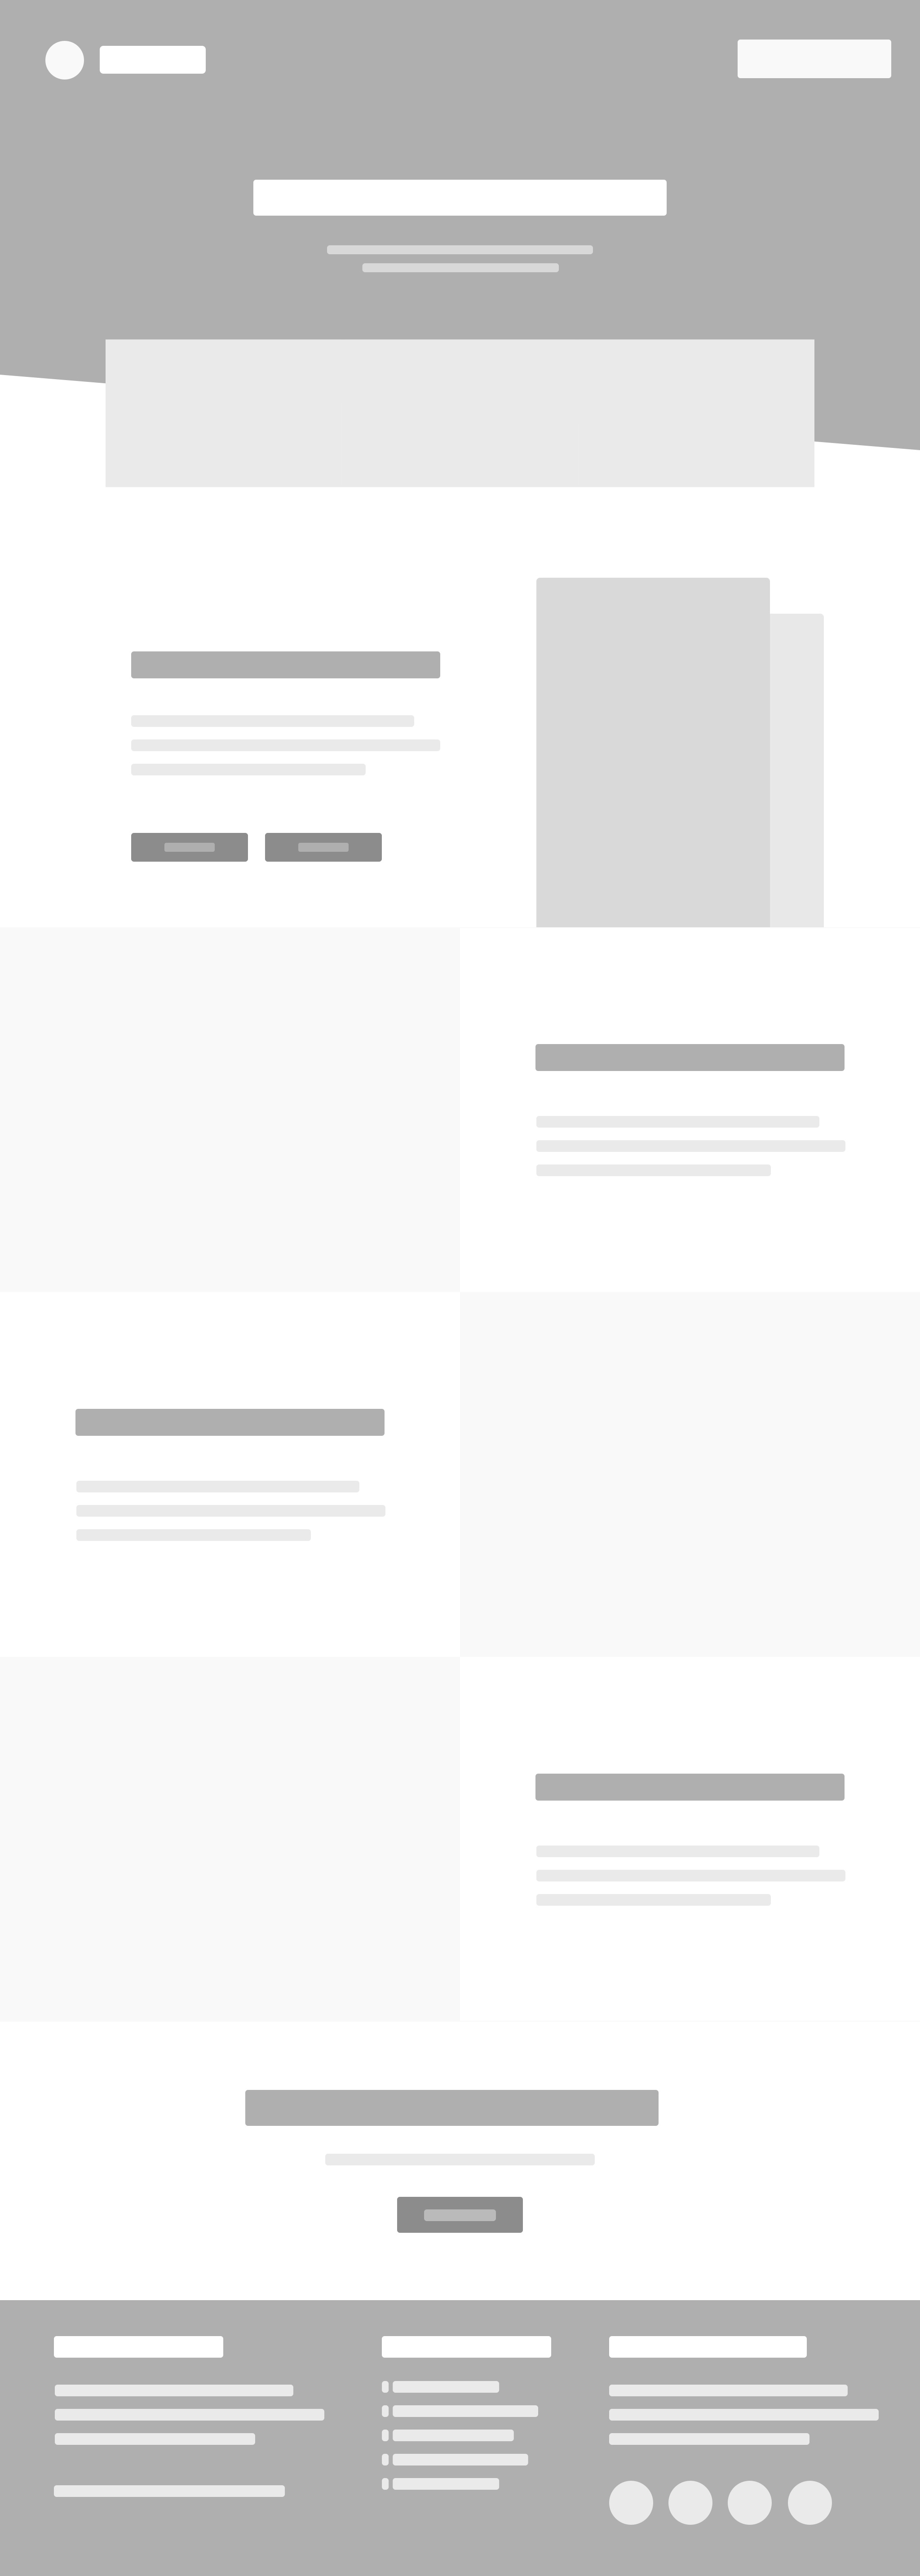 project1-wireframe-homepage